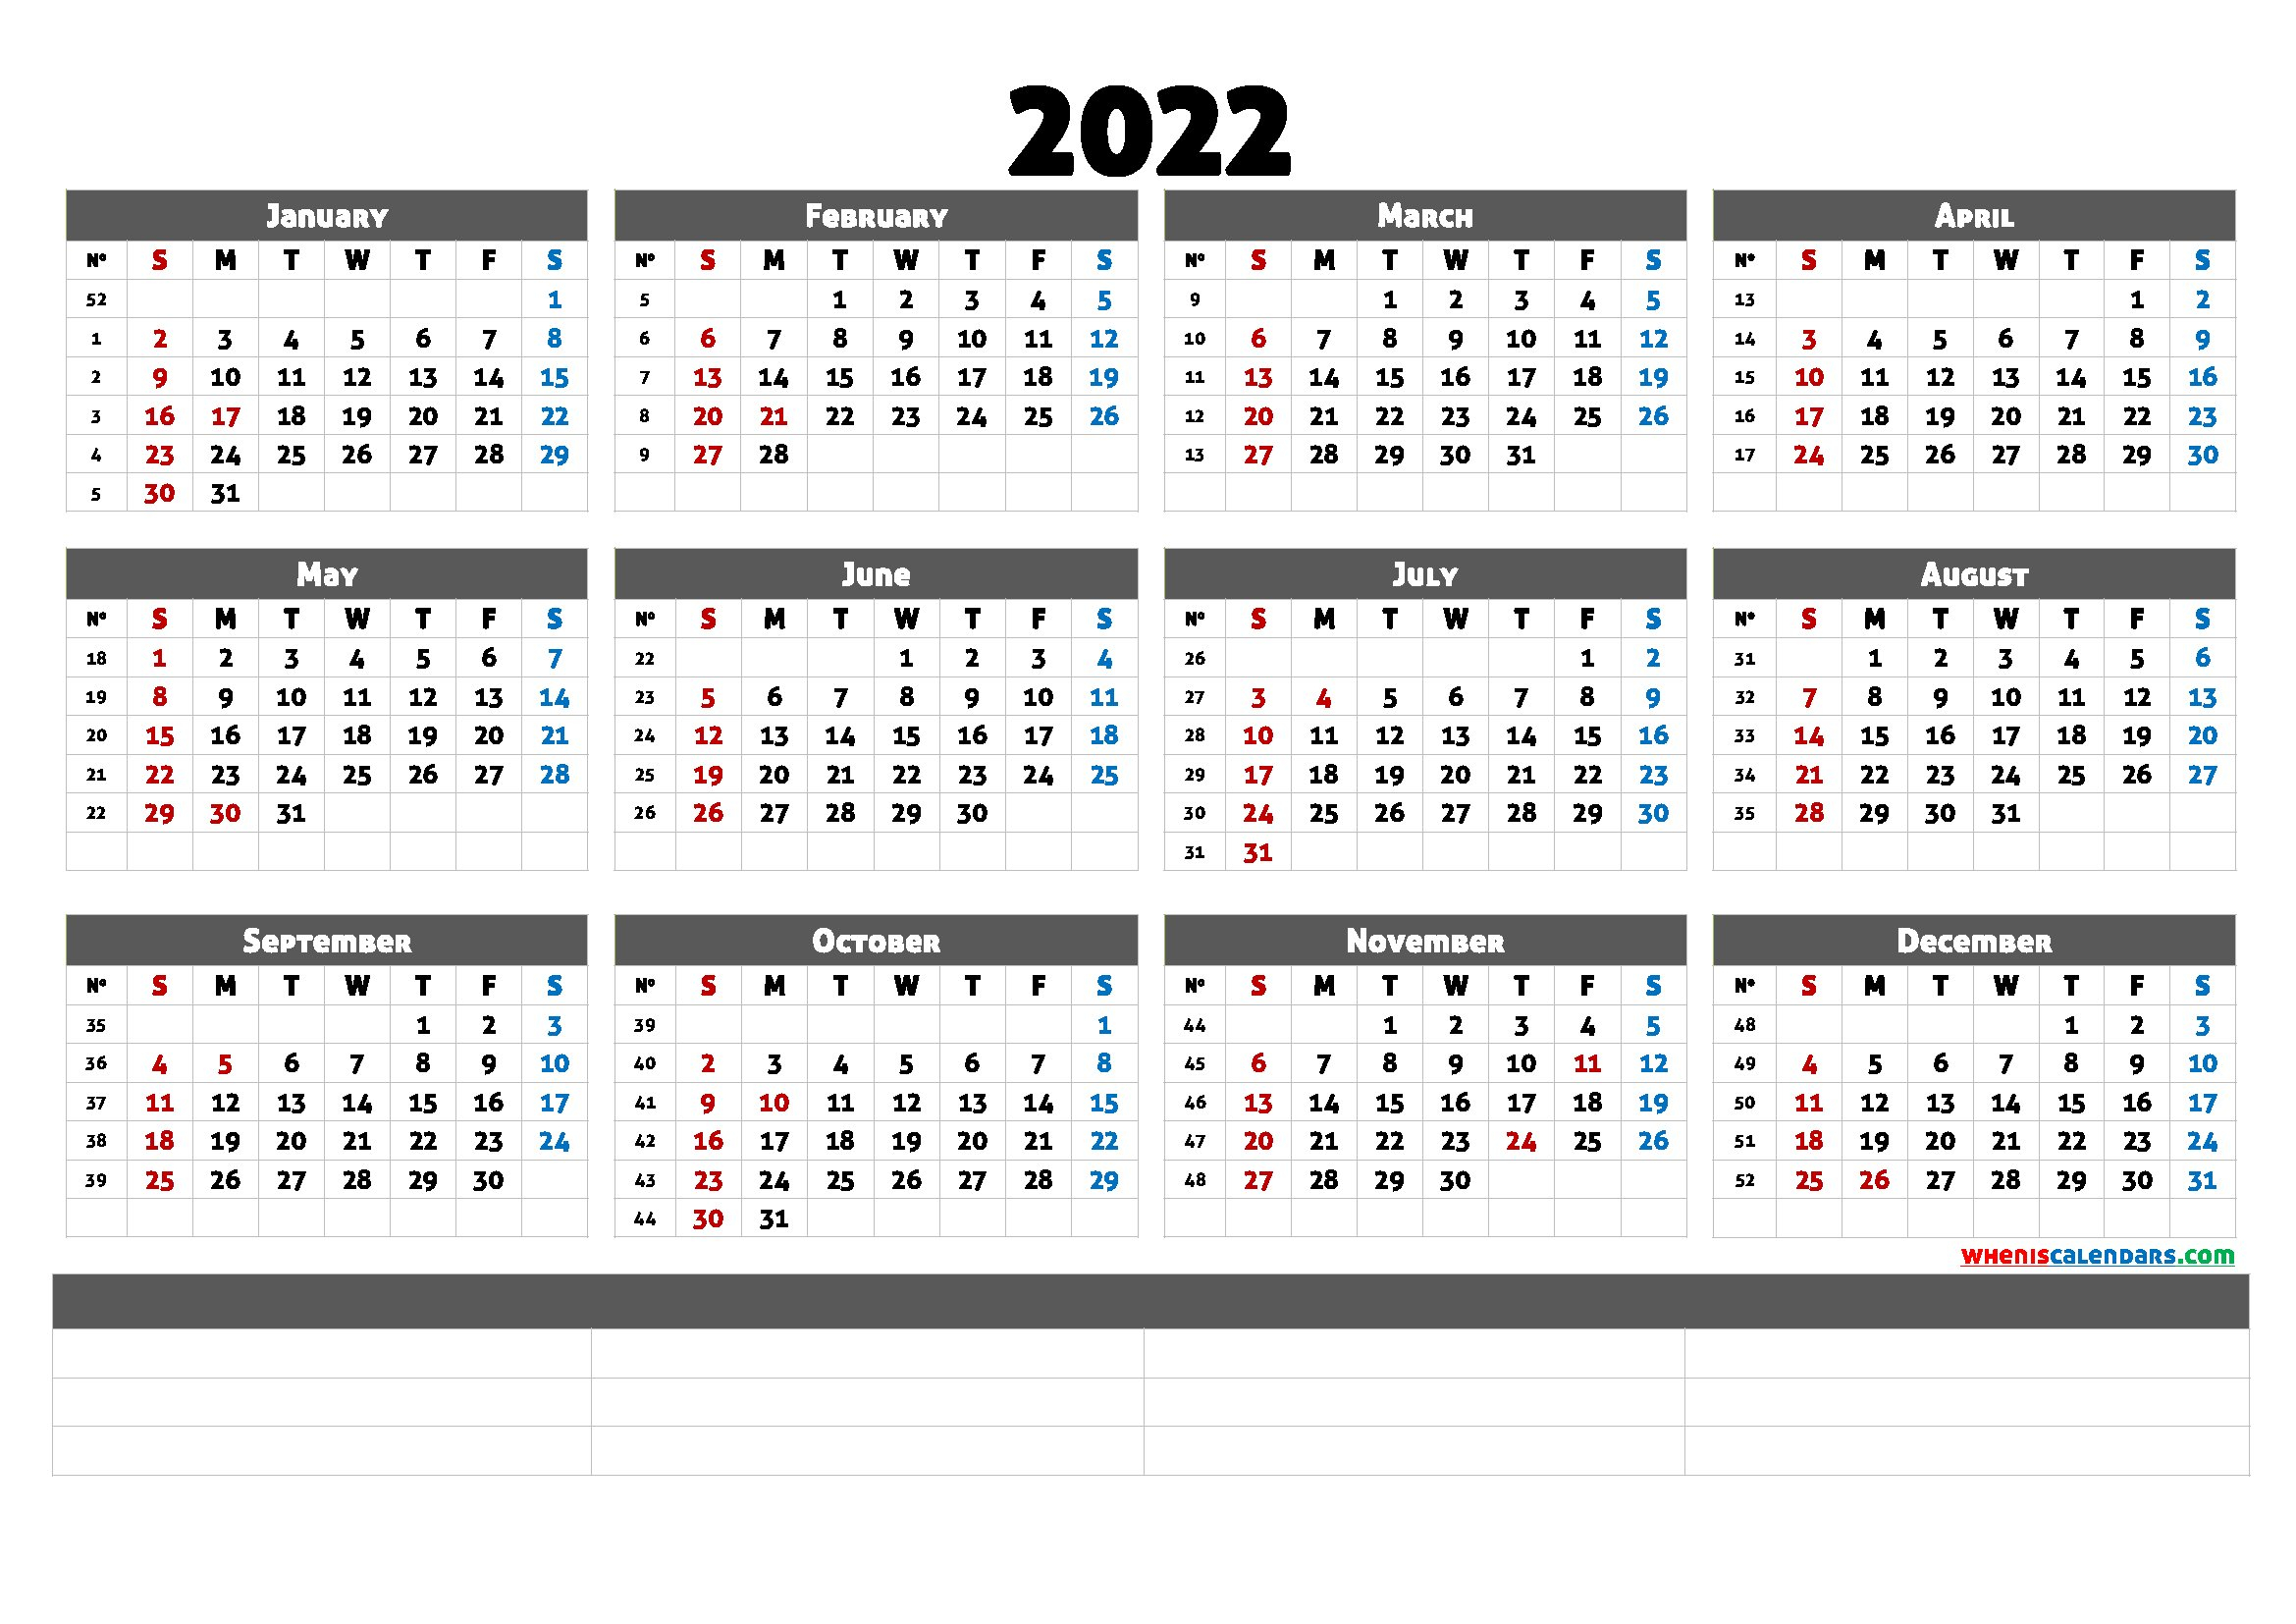 Free Printable 2022 Calendar Templates - Calendraex with Yearly Planner 2022 Printable Free Photo